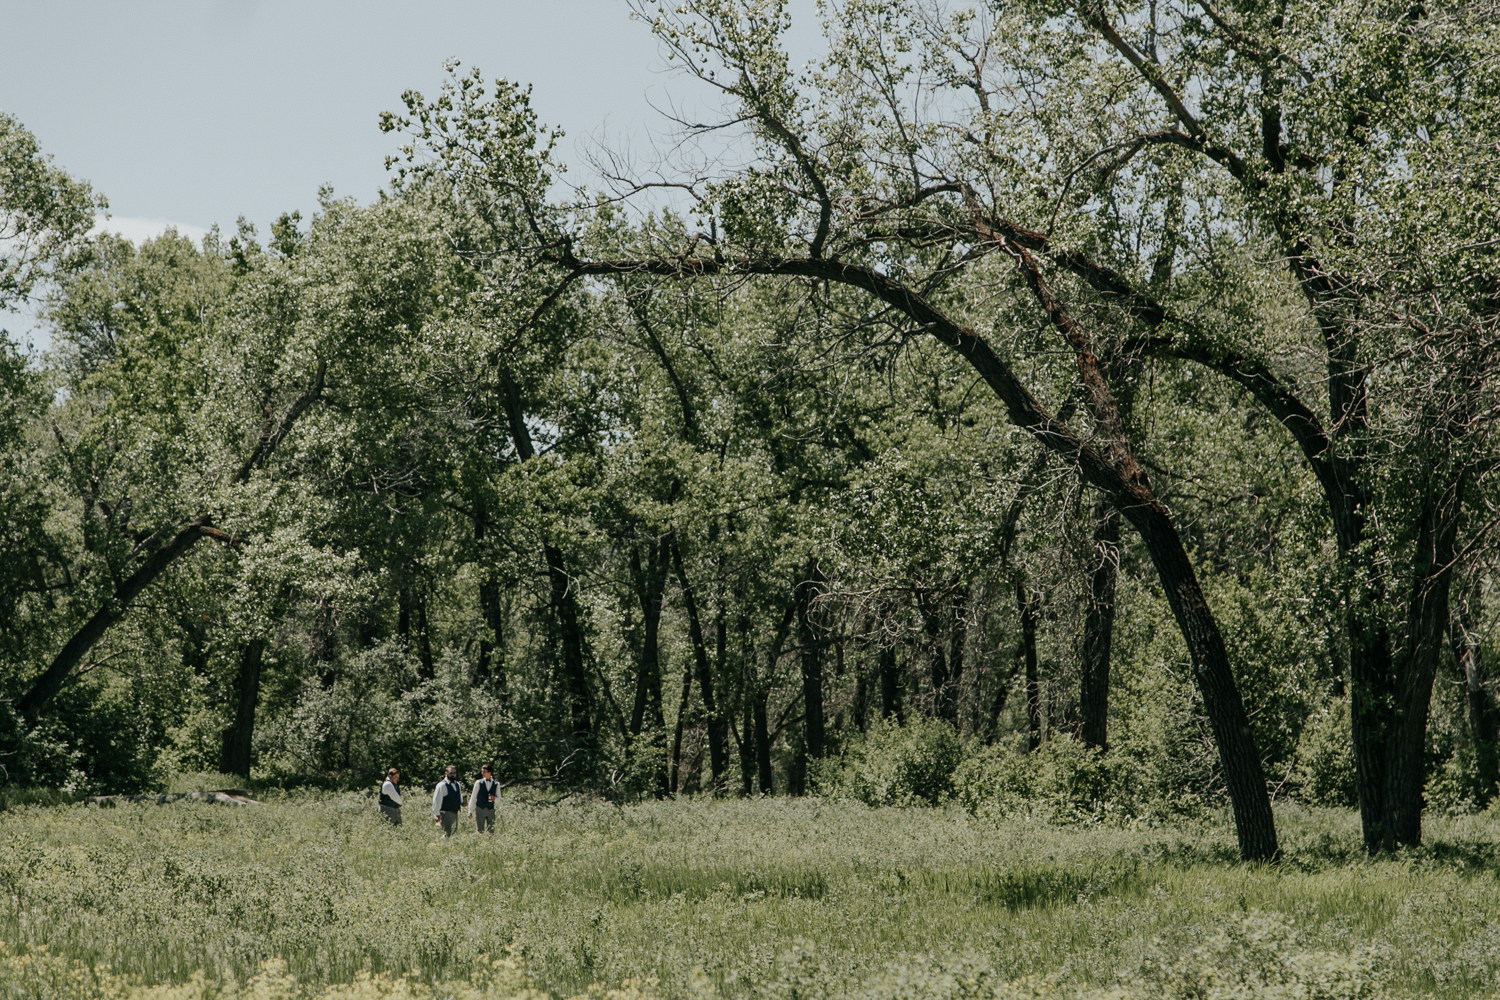 lethbridge-wedding-photographer-love-and-be-loved-photography-dan-tynnea-picture-image-photo-31.jpg